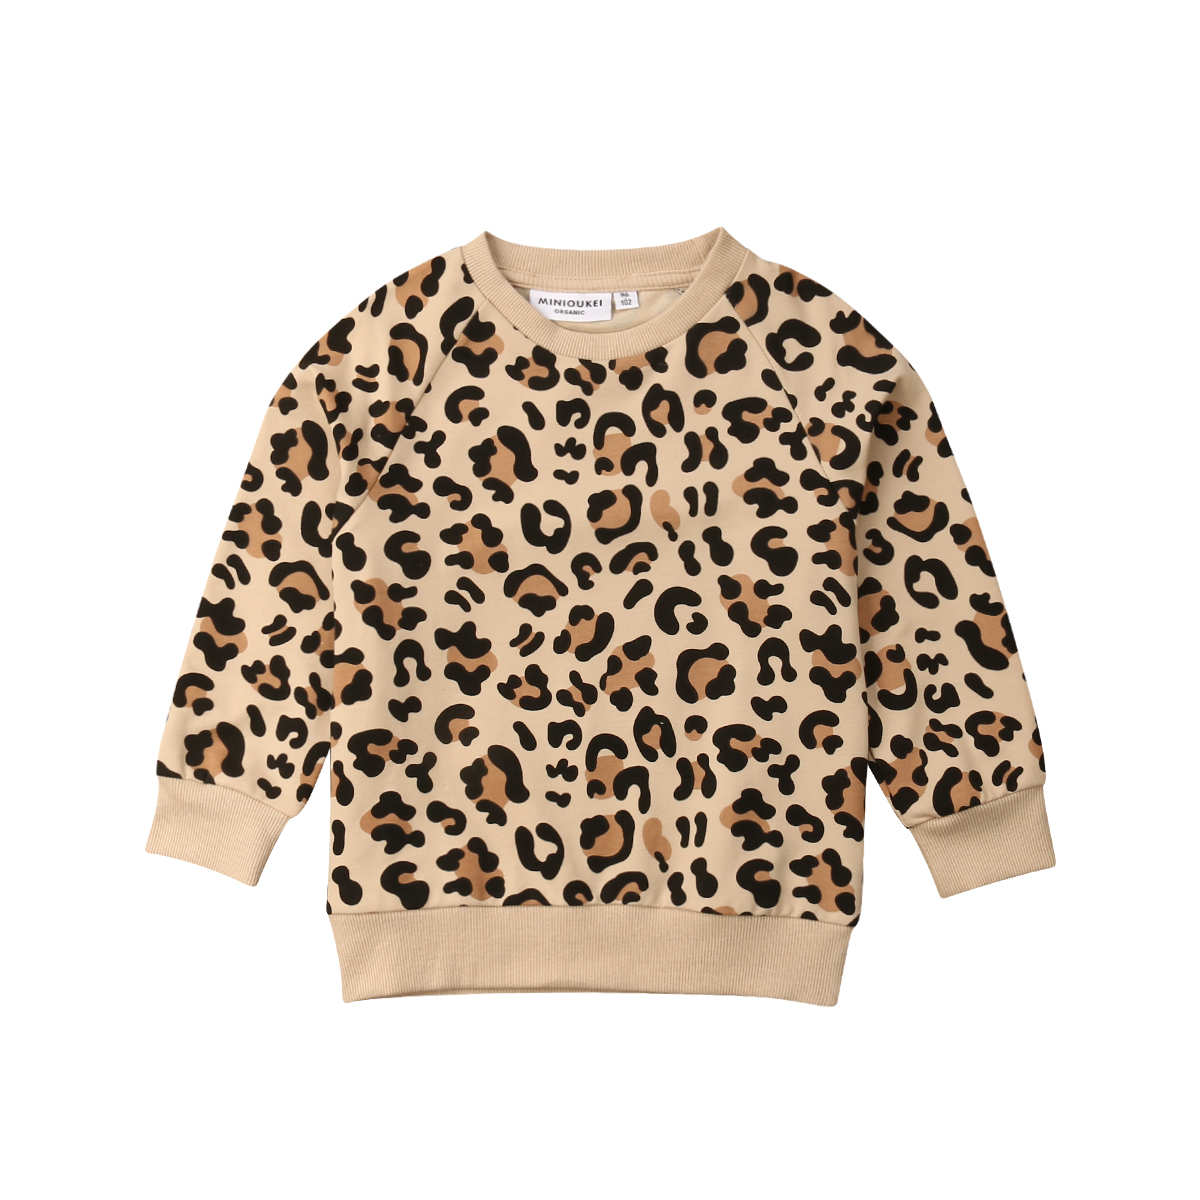 New Arrivels Casual Baby Girl Boy Leopard Top Sweatshirts Toddler Kid Long Sleeve Top Sweatshirt Coat 1-7T(China)